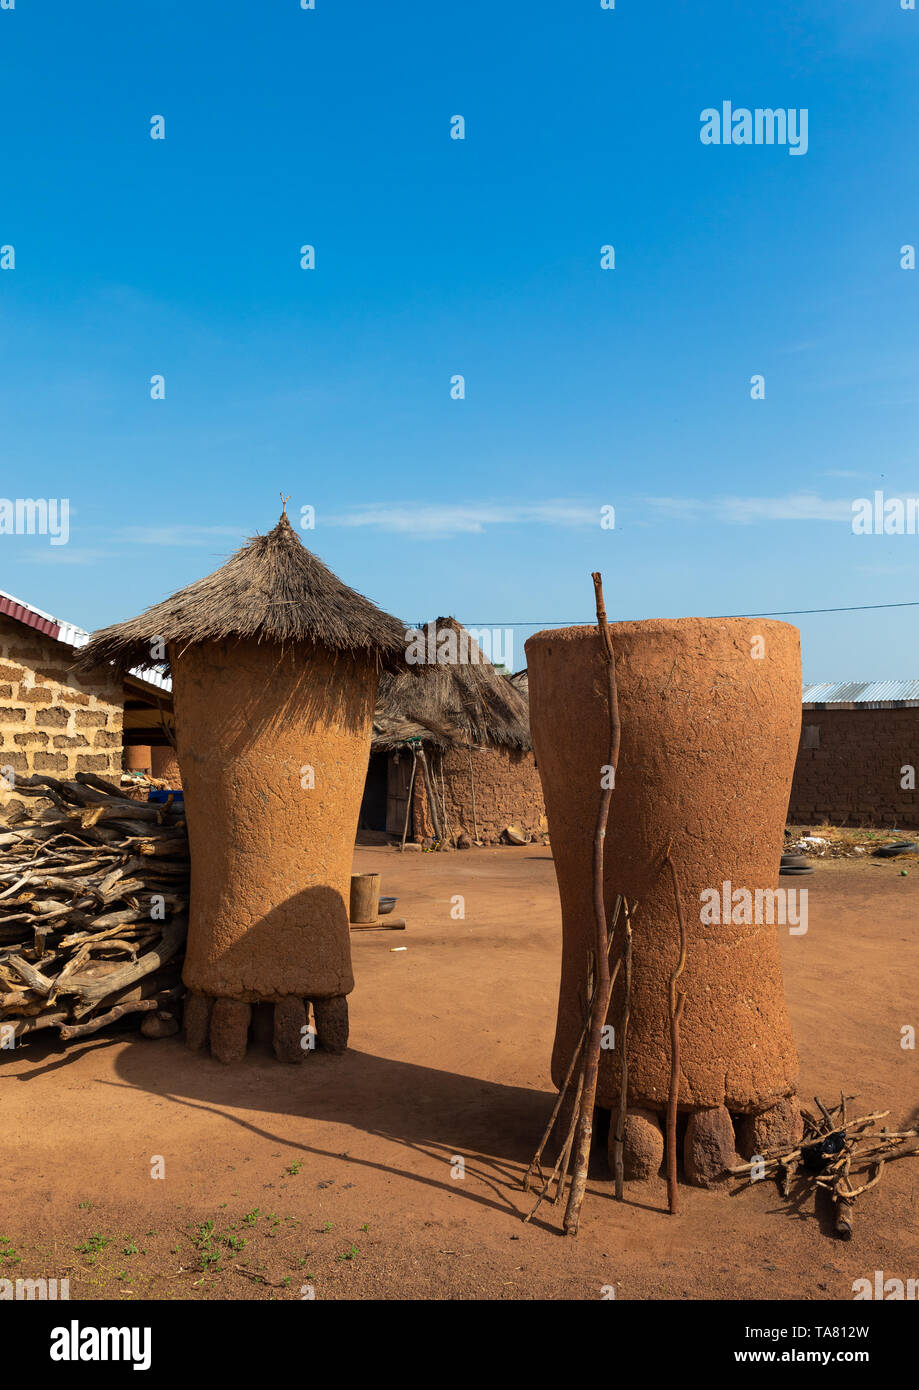 Adobe granaries with thatched roofs, Savanes district, Niofoin, Ivory Coast Stock Photo